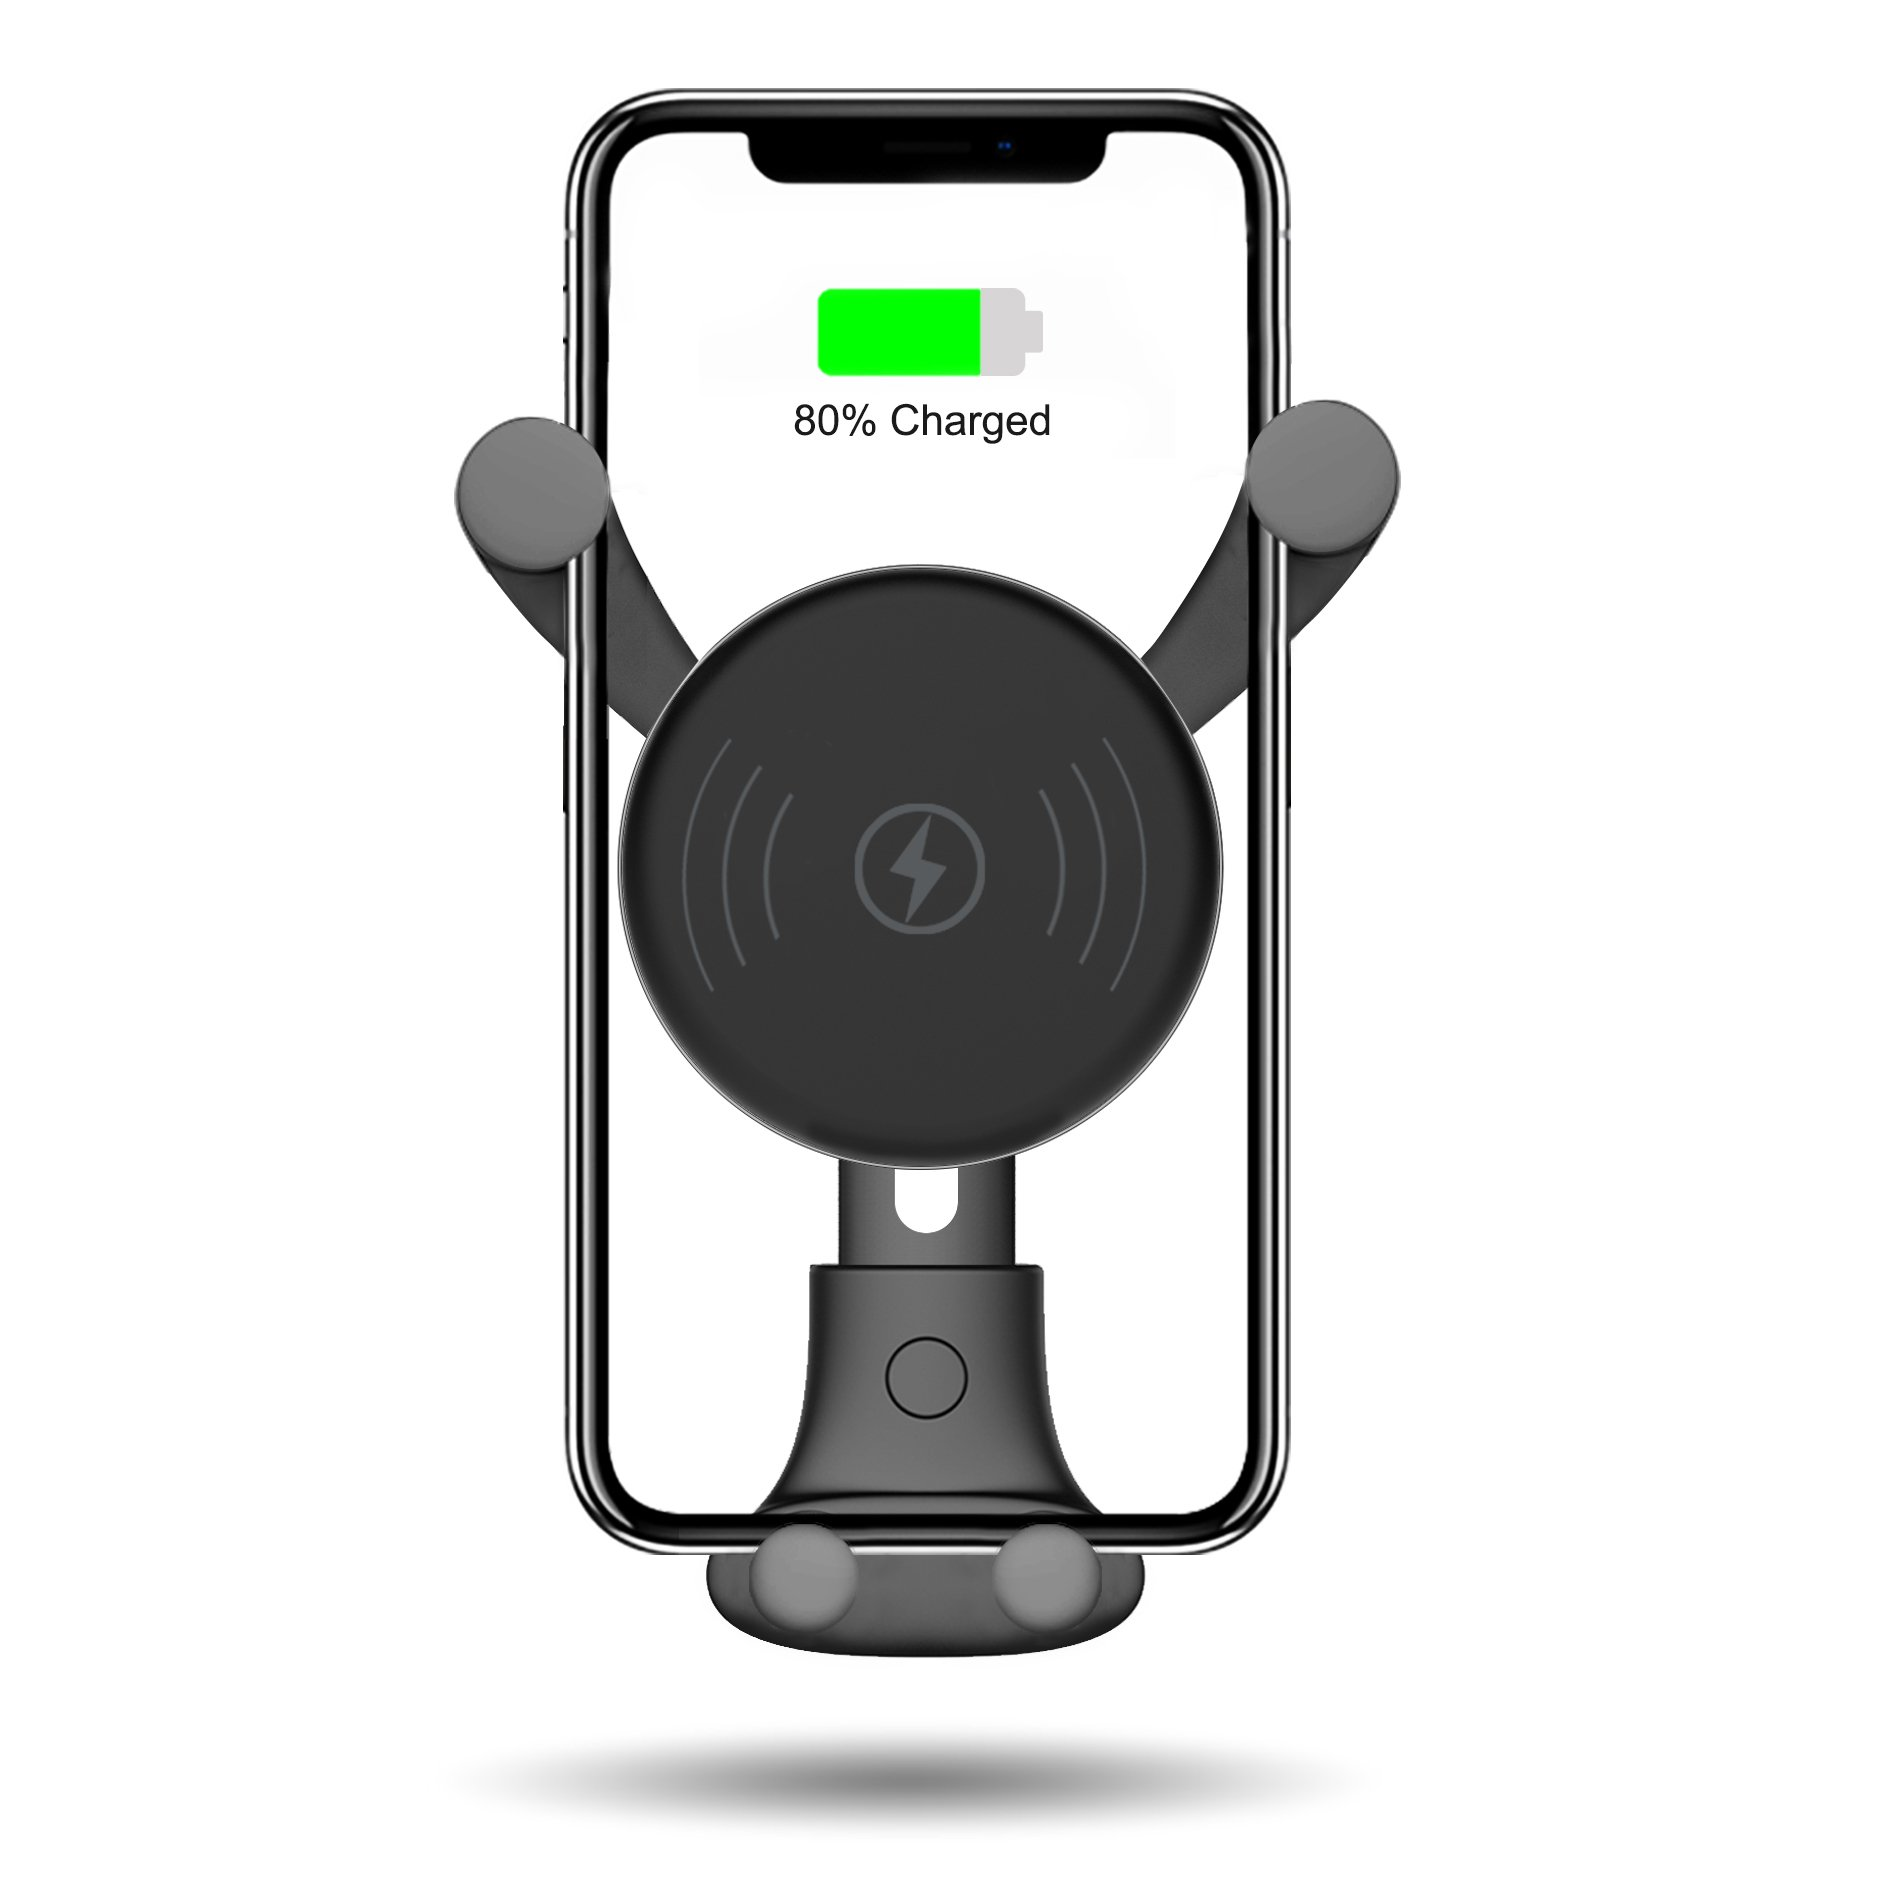 [2019 Latest] Wireless Car Charger, Fast Car Charger Mount, Air Vent Phone Holder, 10W Compatible for Samsung Galaxy S9/S9+, S8/S8+, S7/S7 Edge, Note8, 7.5W Compatible for iPhone X, iPhone 8/8+